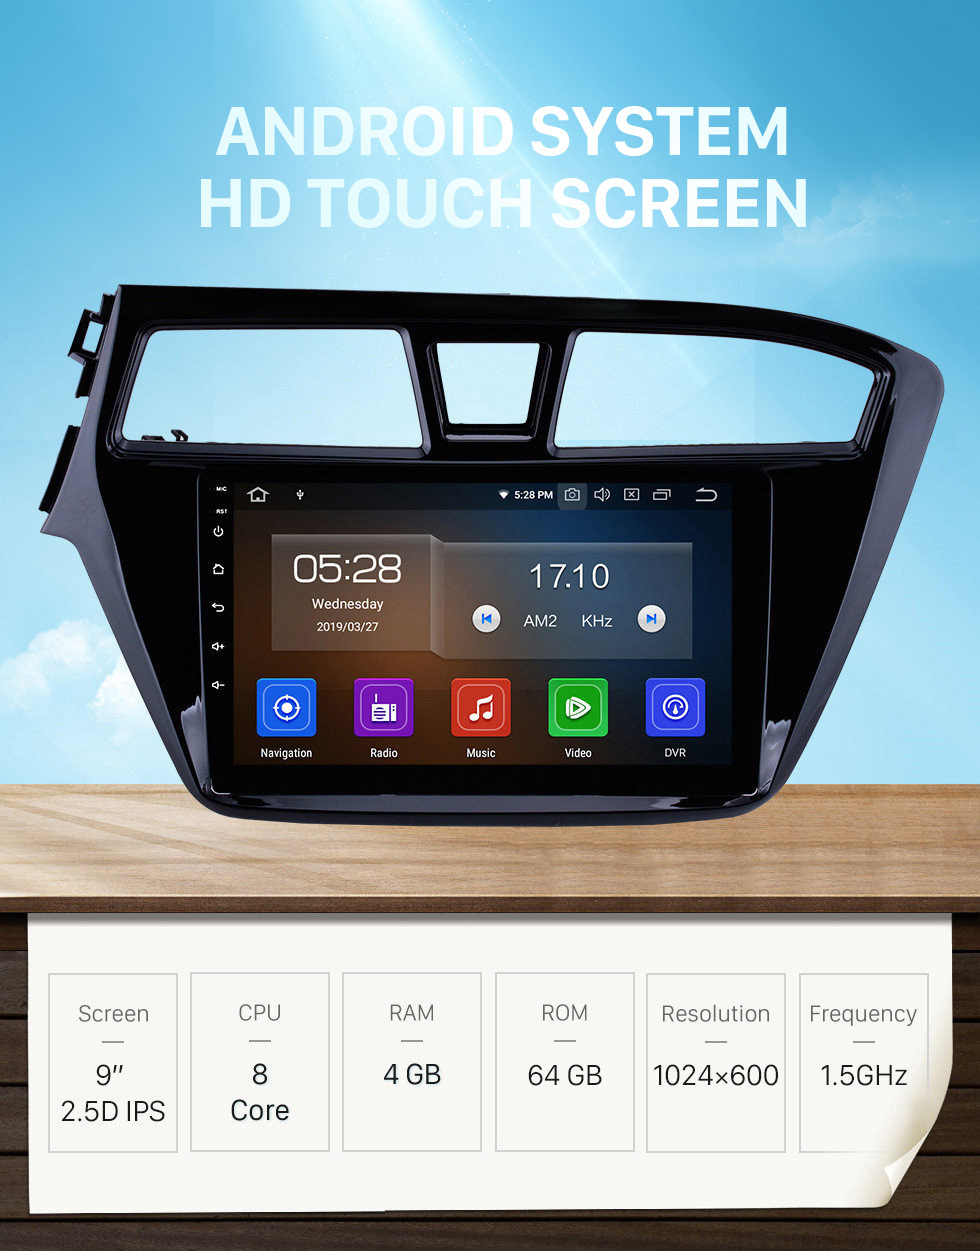 Seicane Aftermarket Android 10.0 navigation system Radio for 2014 2015 Hyundai i20 with Mirror link GPS HD 1024*600 touch screen OBD2 DVR Rearview camera TV 1080P Video 3G WIFI Steering Wheel Control Bluetooth USB SD